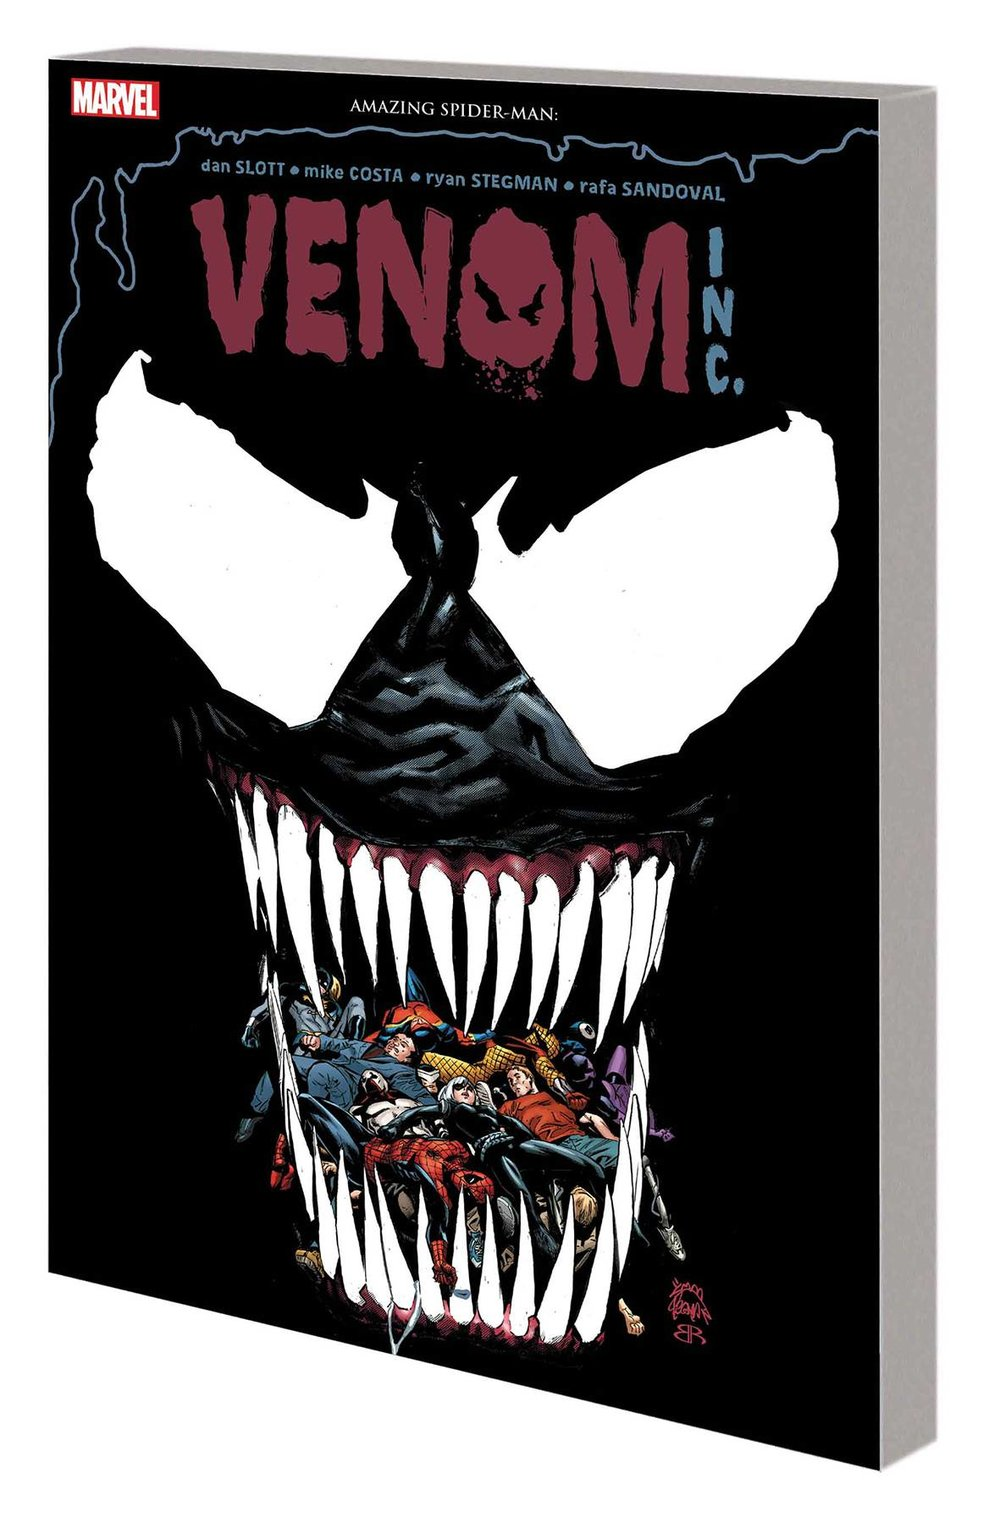 AMAZING SPIDER-MAN VENOM INC TP.jpg